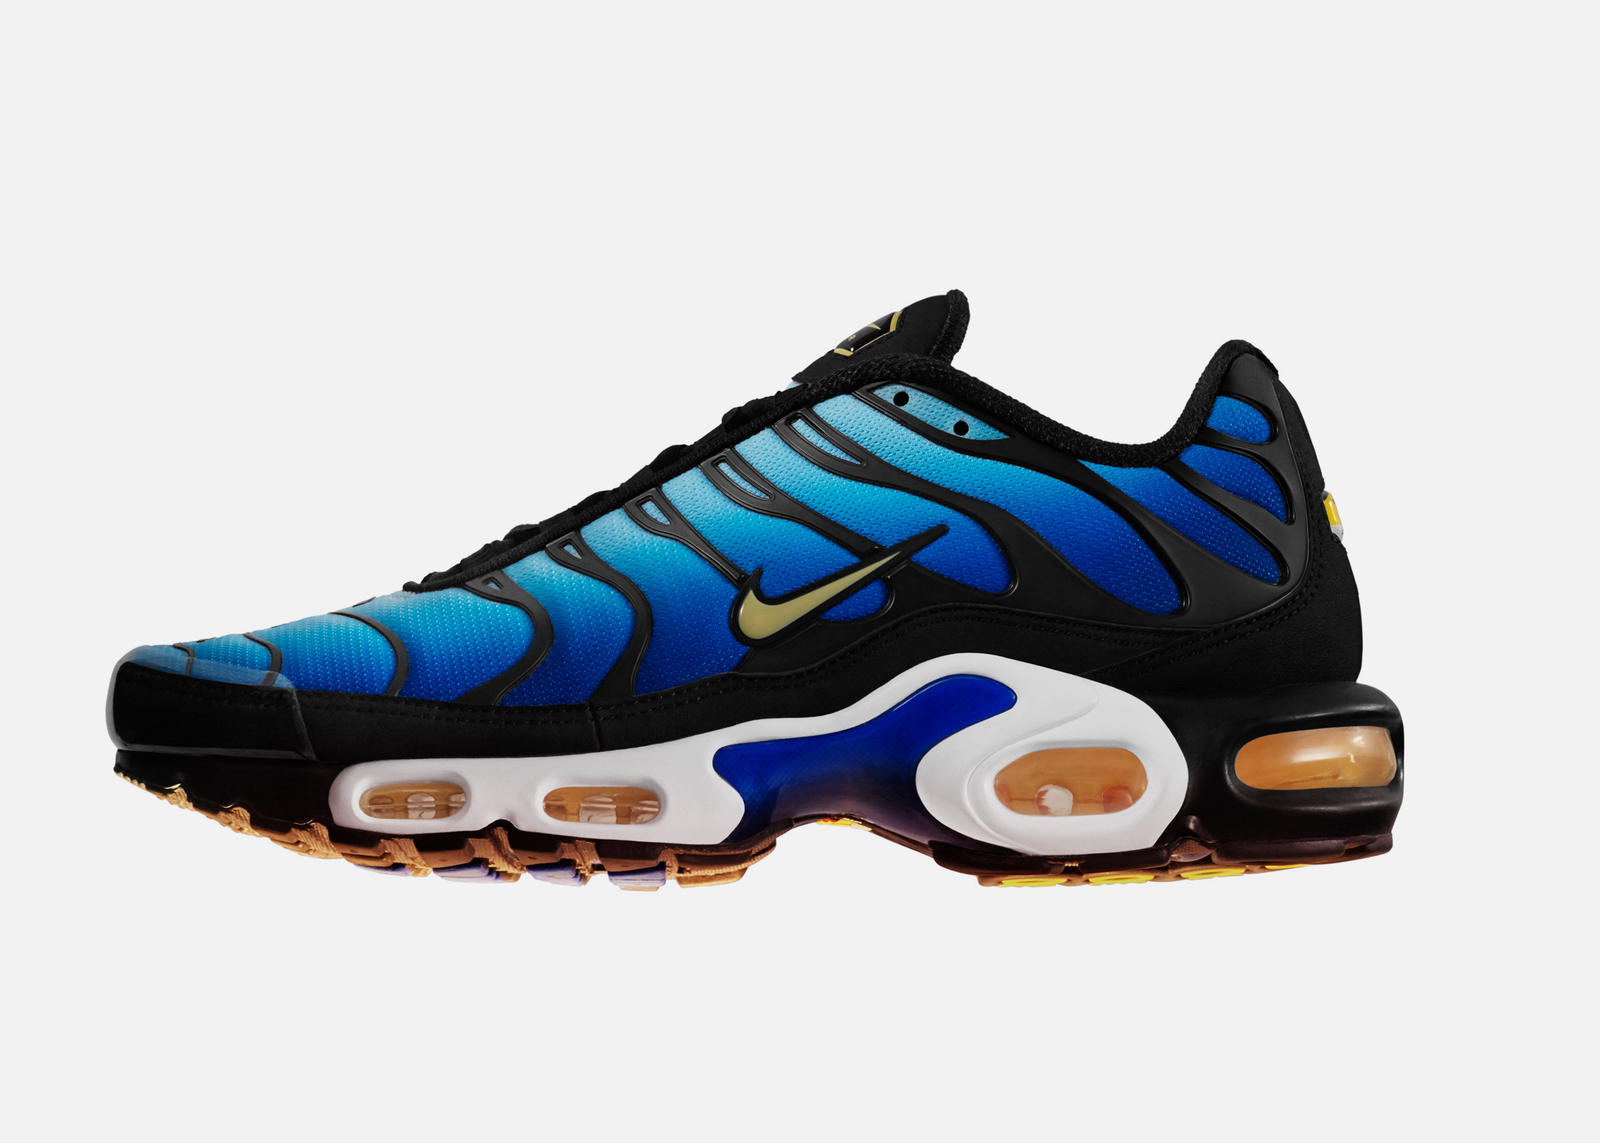 21727adaba The Untold Story of the Nike Air Max Plus 20